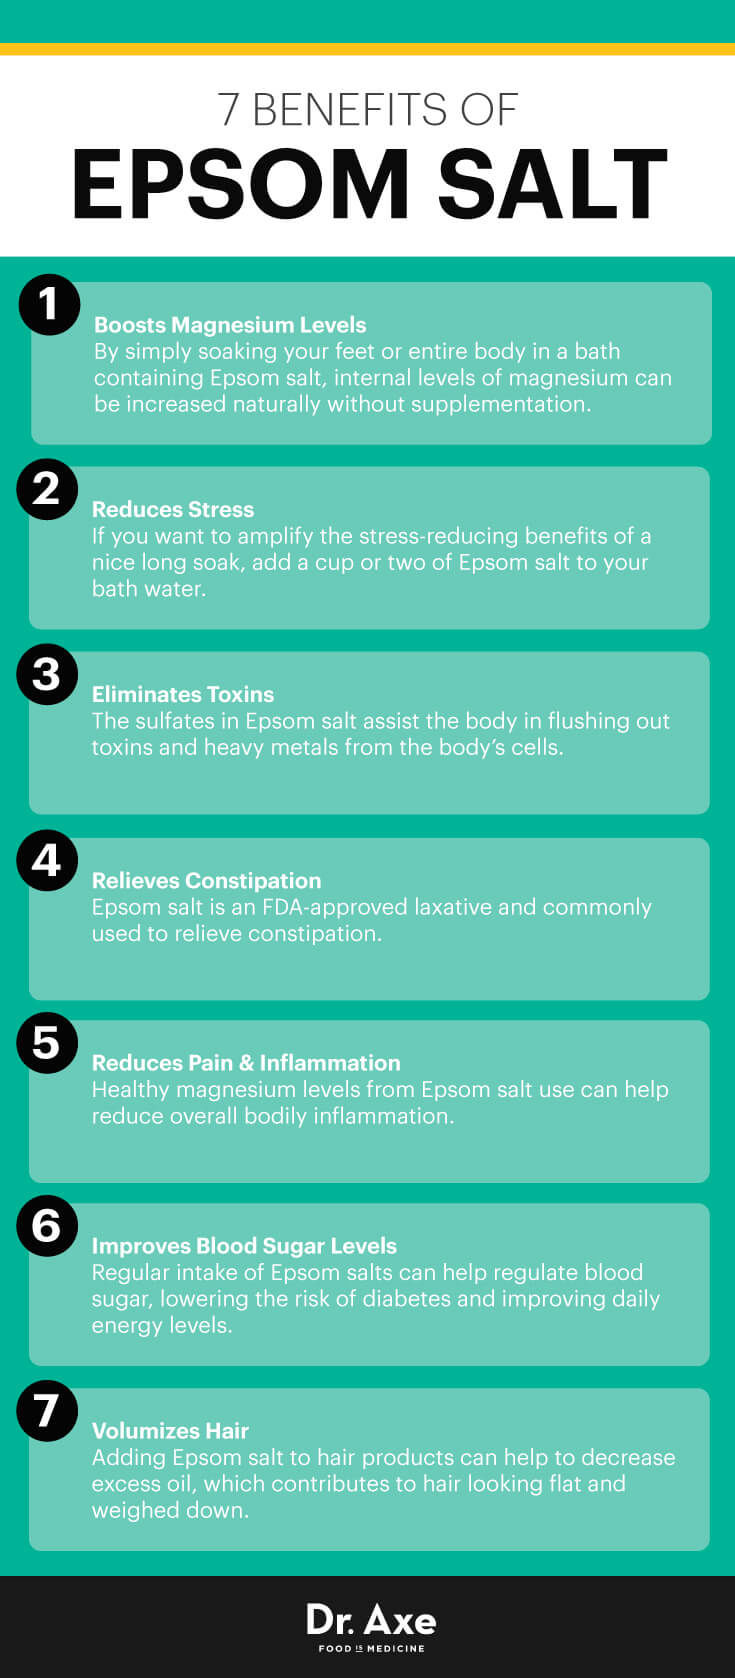 7 Benefits Of Epsom Salt Pictures  Photos  And Images For Facebook  Tumblr  Pinterest  And Twitter